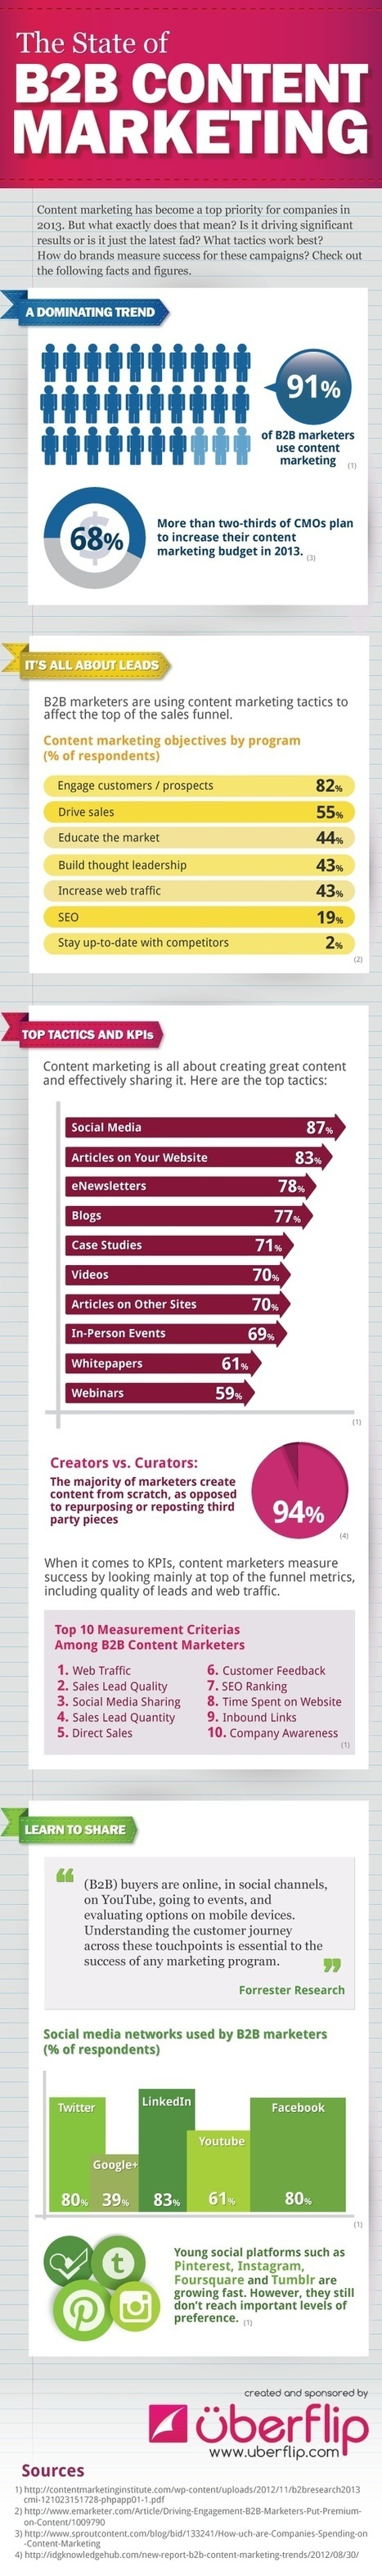 Infografiche | All Things Curation | Scoop.it